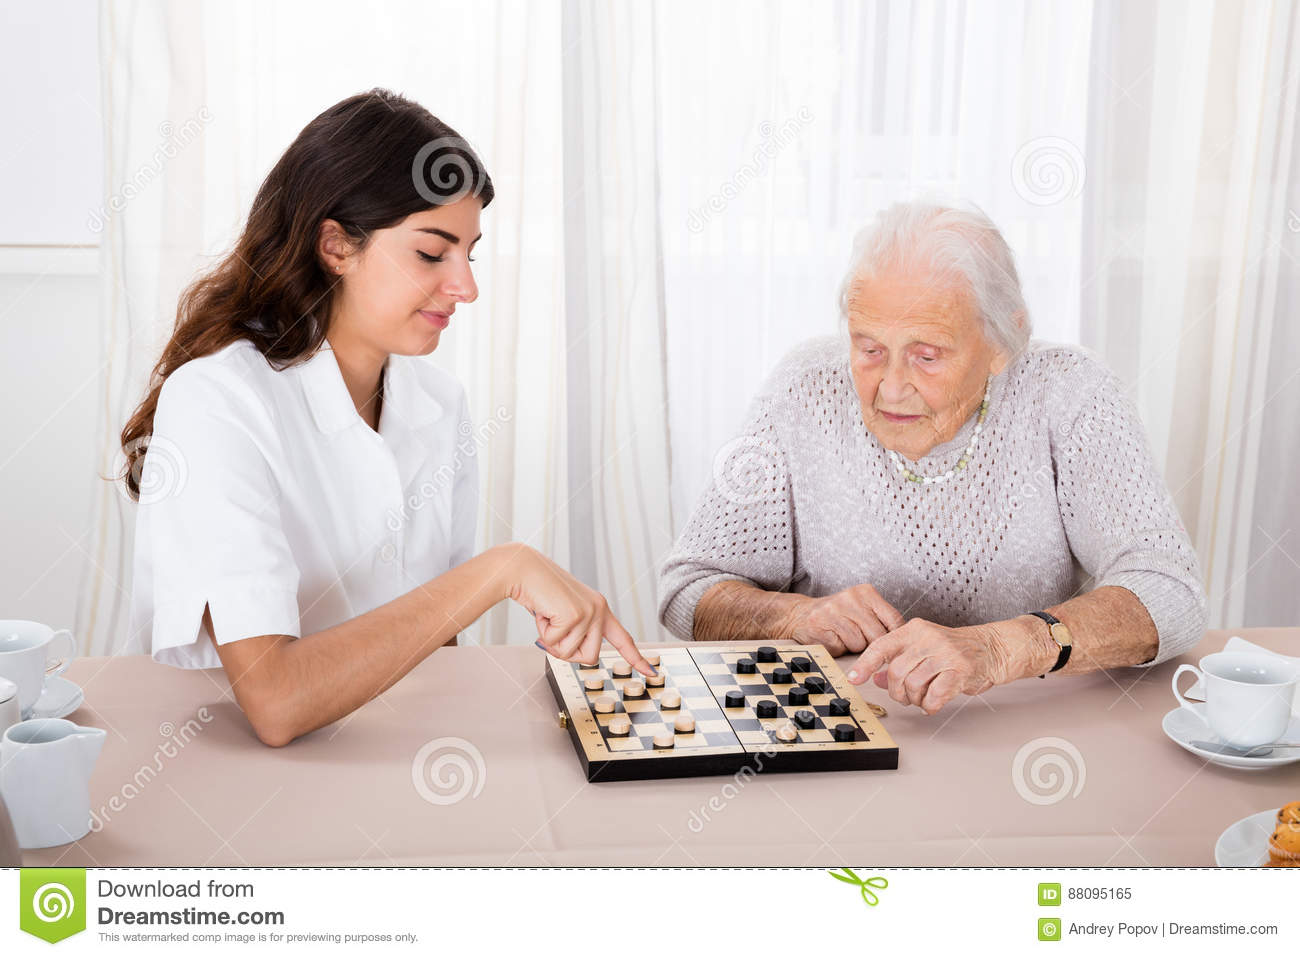 Two Women Playing Checkers Game